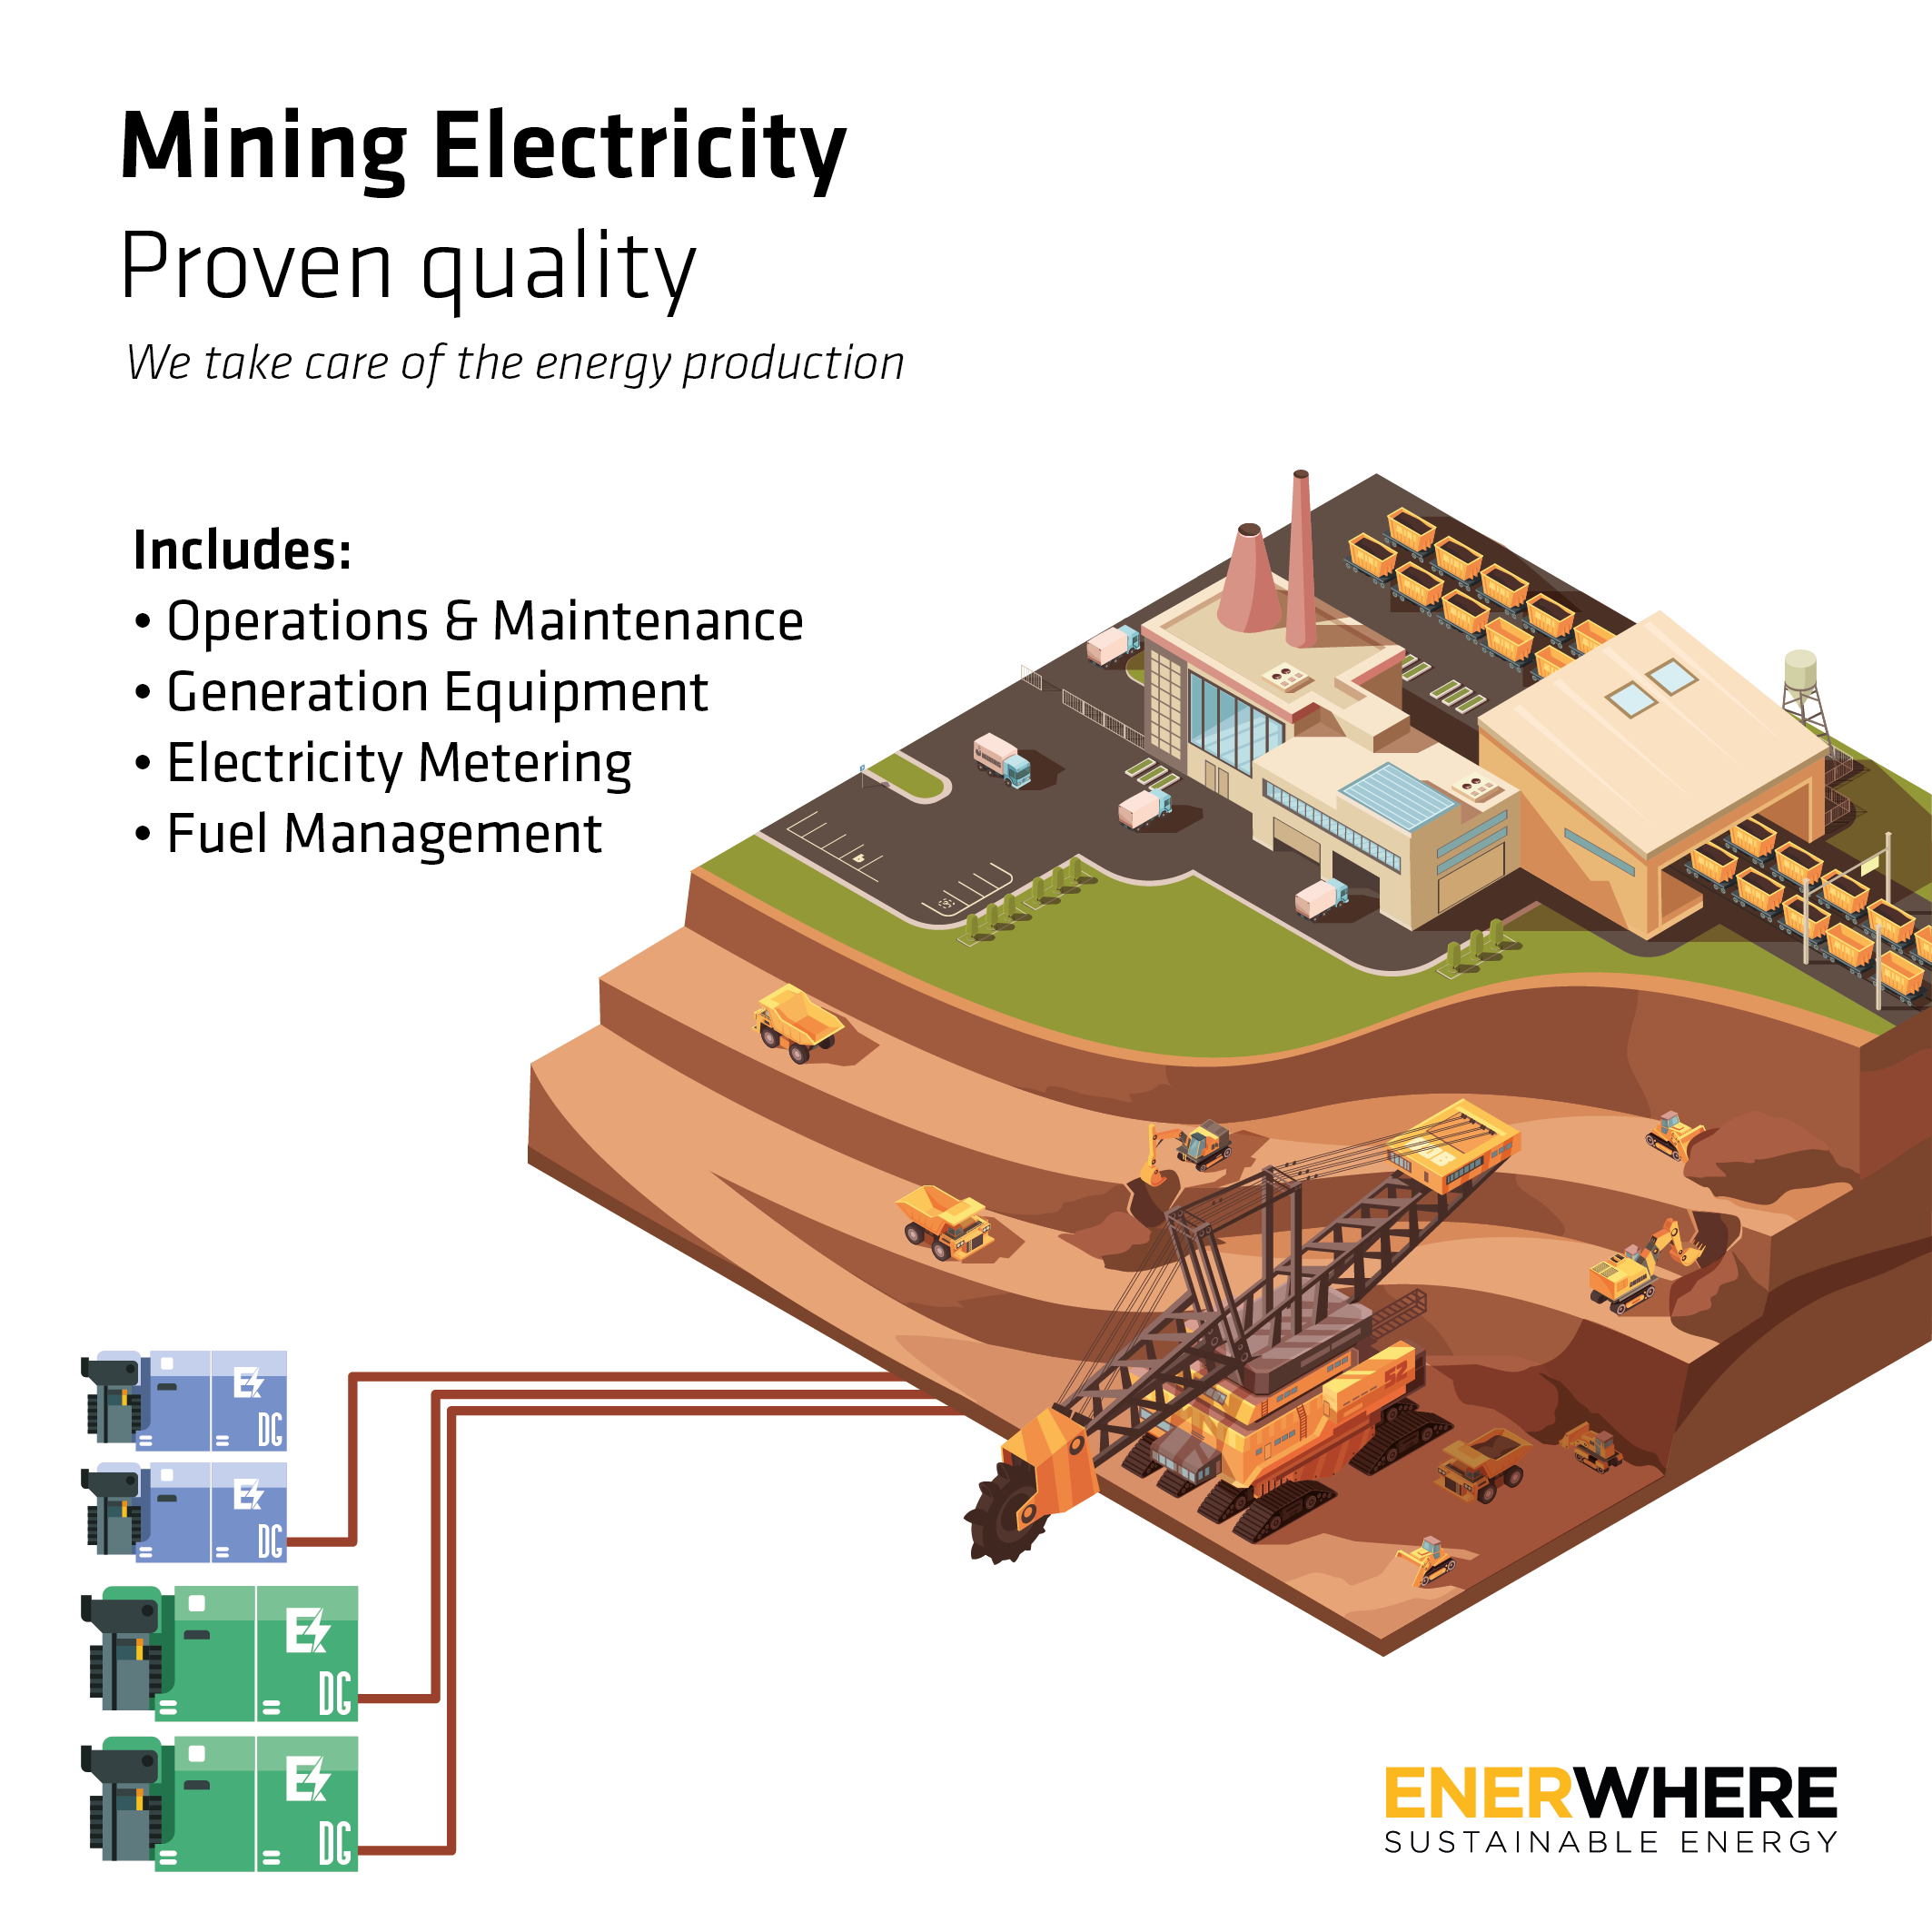 20210121 - Poster Promotion #3 Mining off-grid microgrid hybrid power quarry quarriesFeed